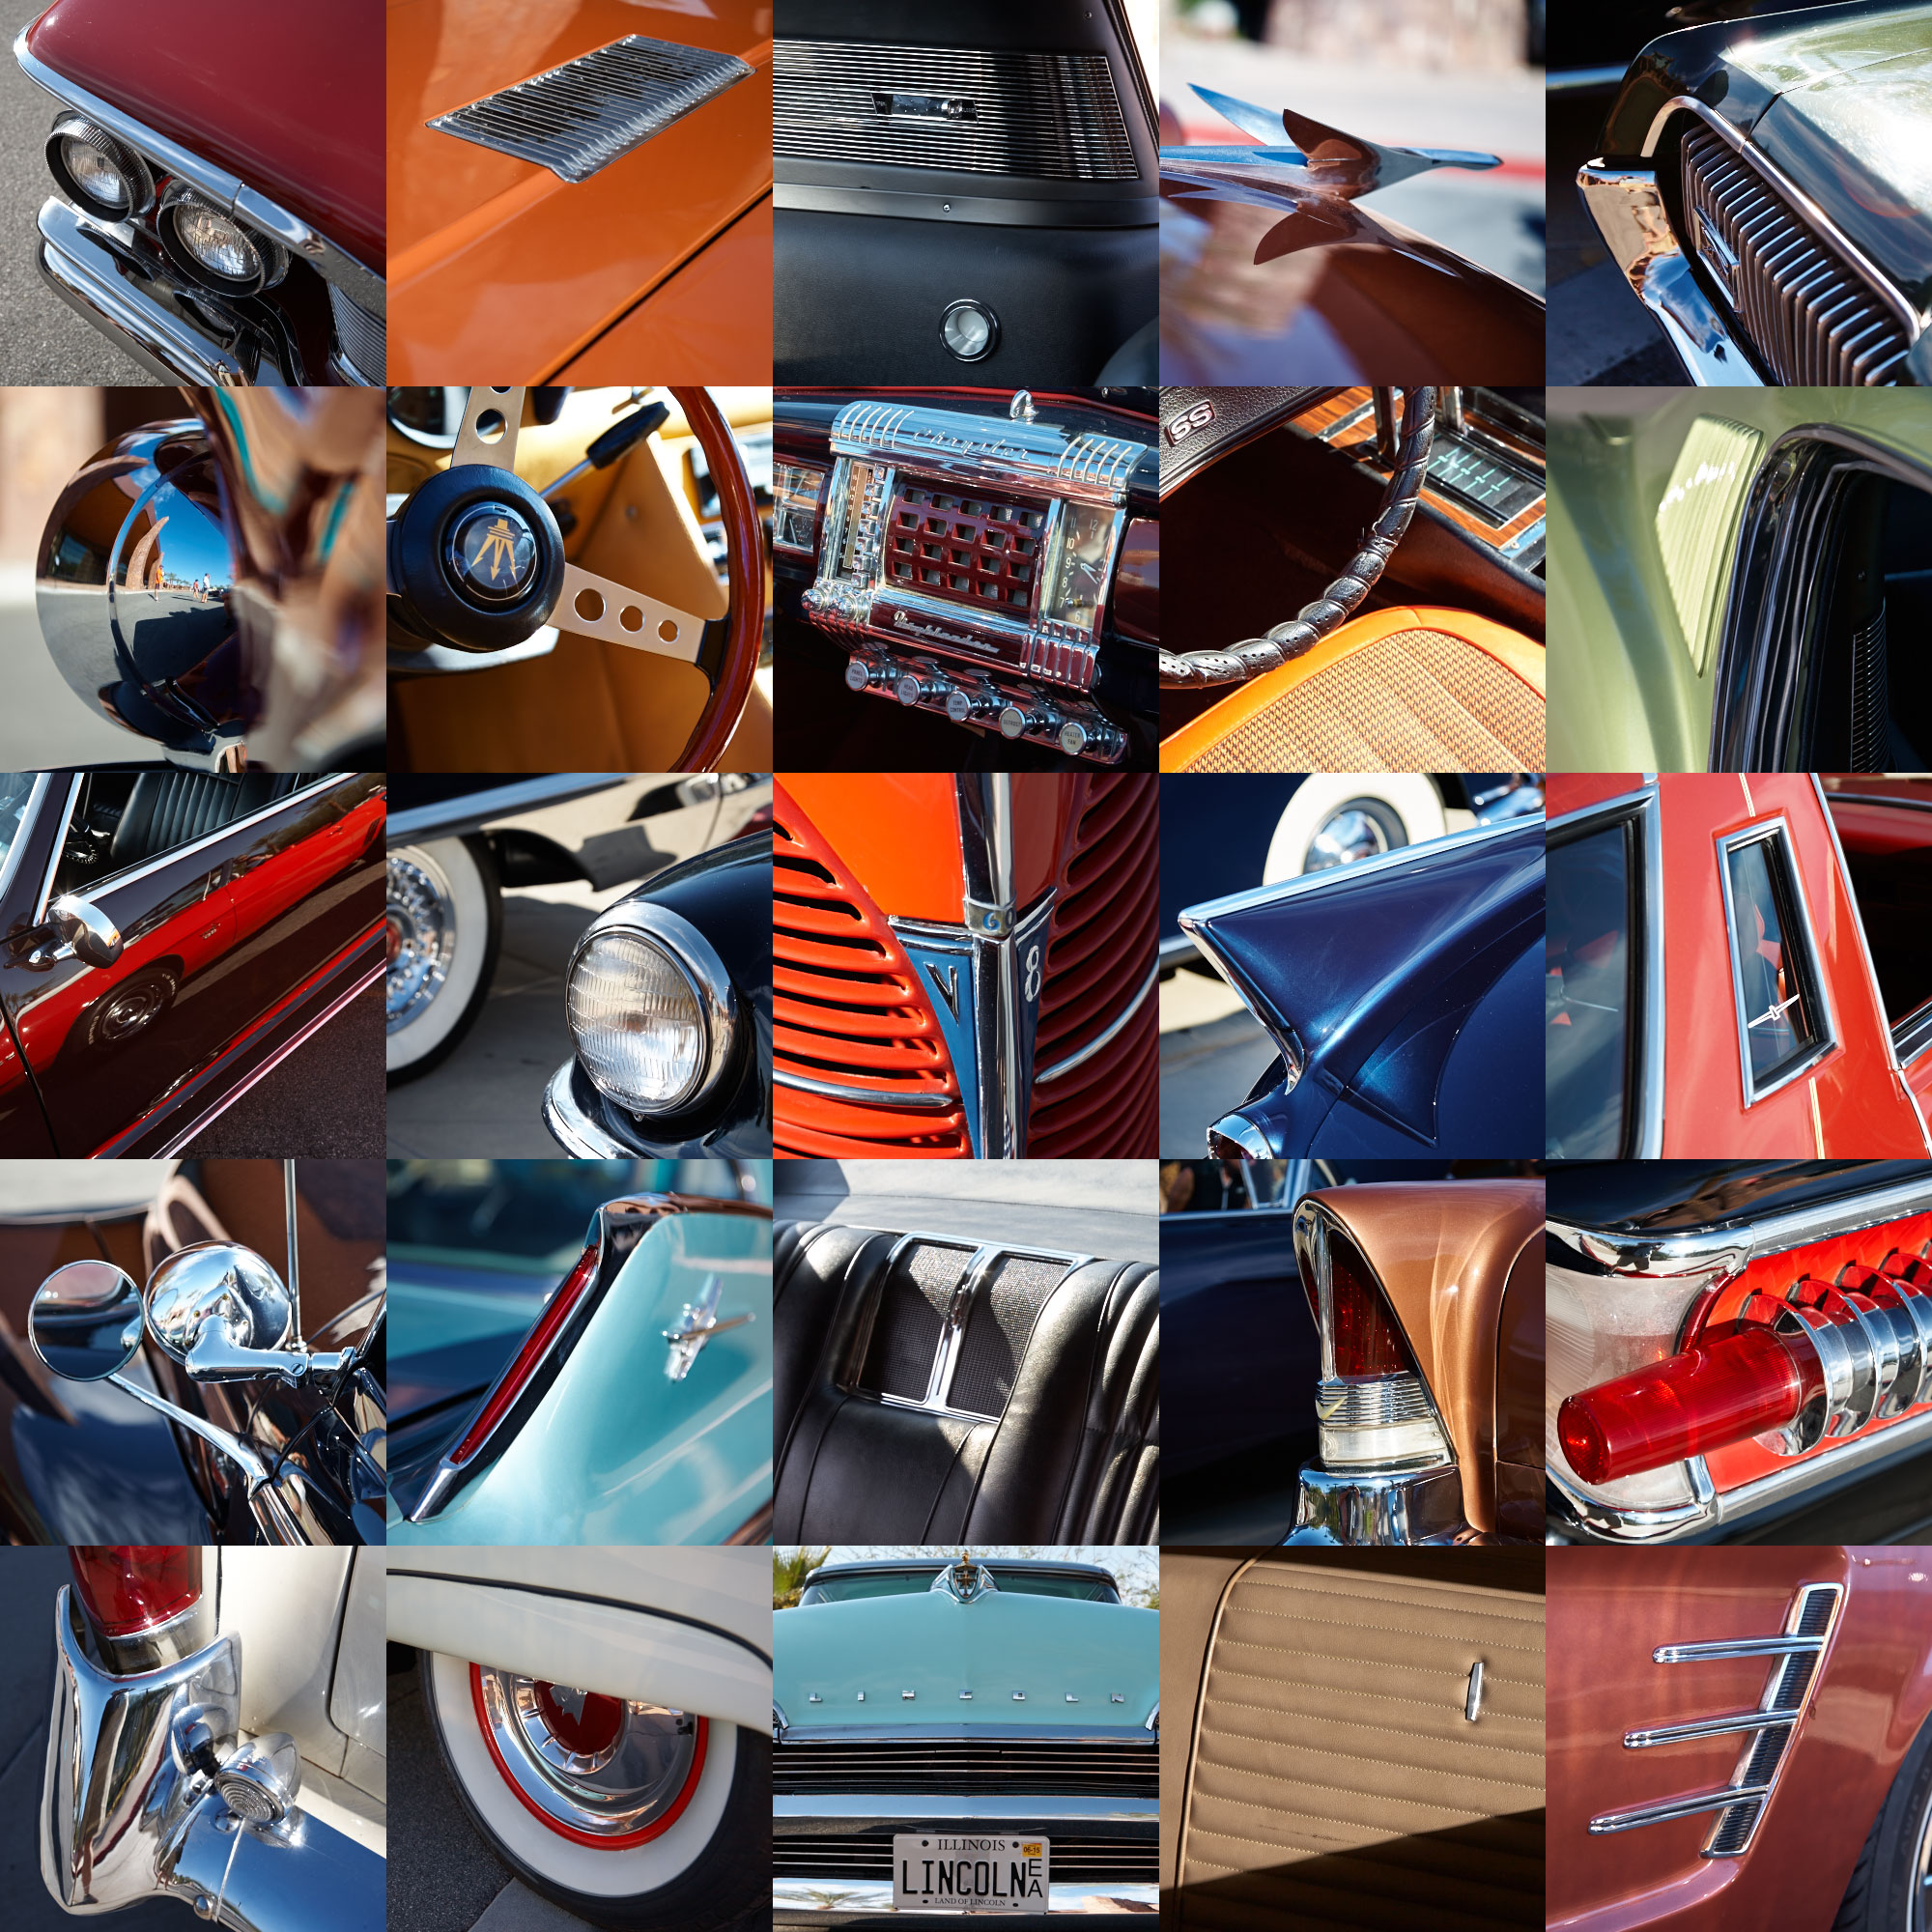 Palm Springs Modernism Week Car Show - in one image